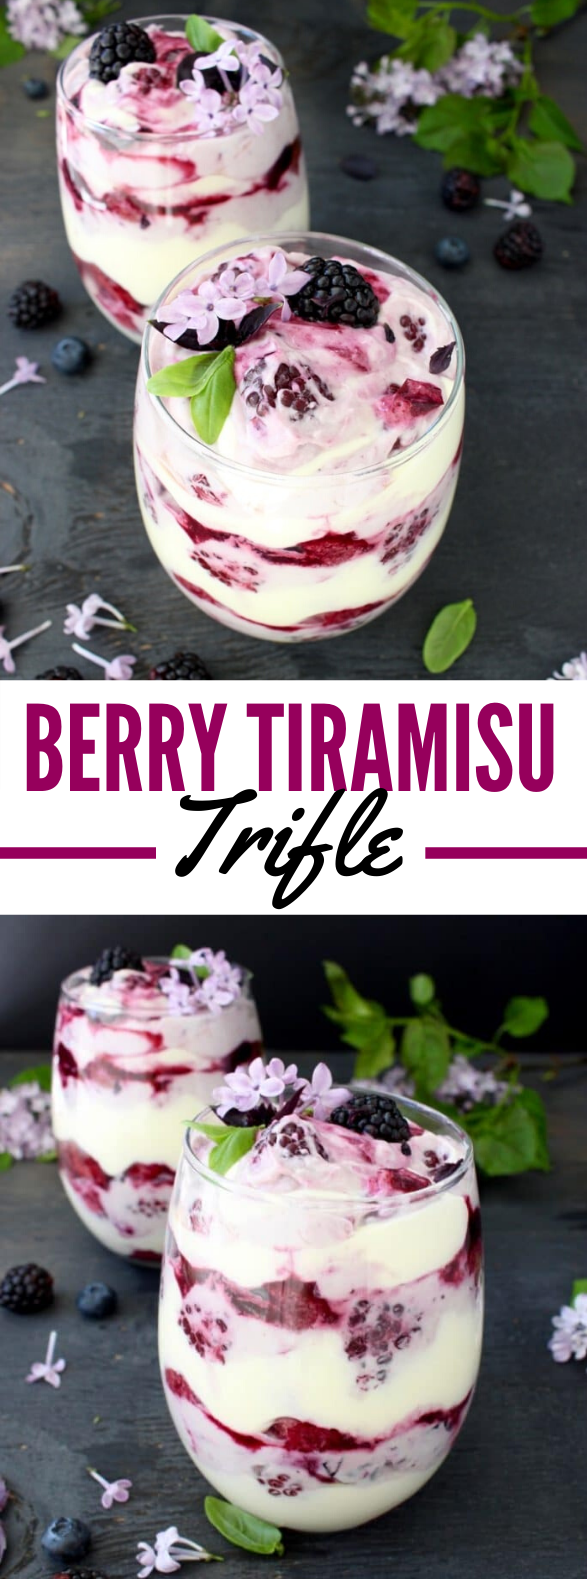 Berry Tiramisu Trifle Recipe #desserts #creamcheese